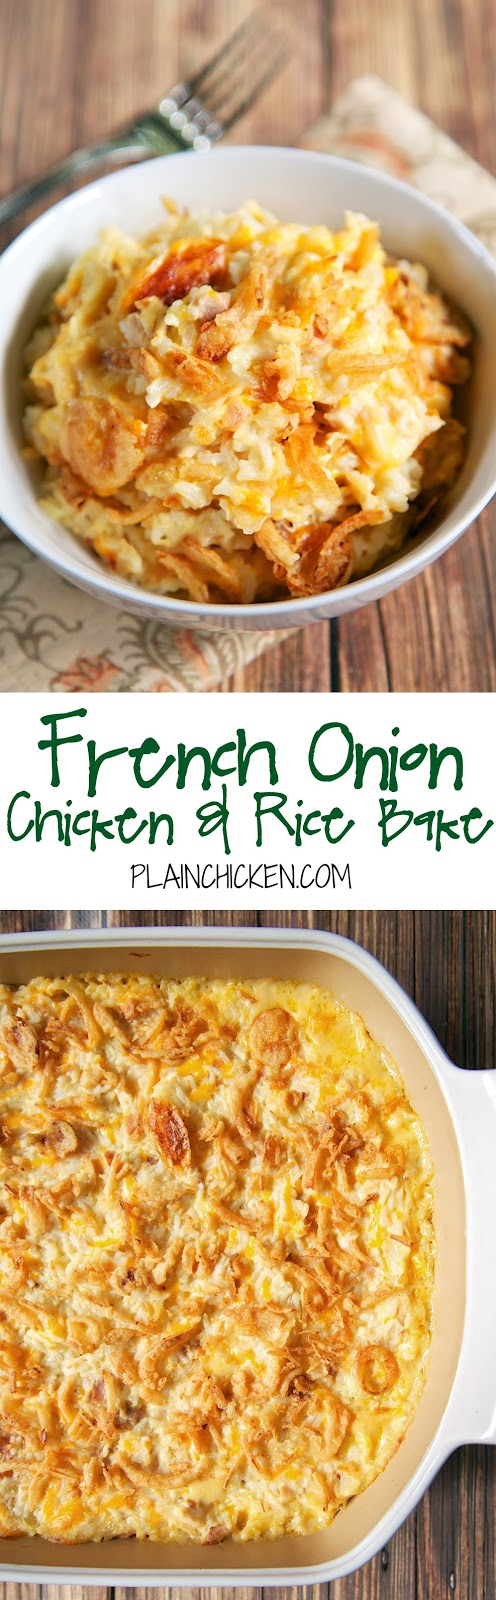 French Onion Chicken And Rice Bake Plain Chicken